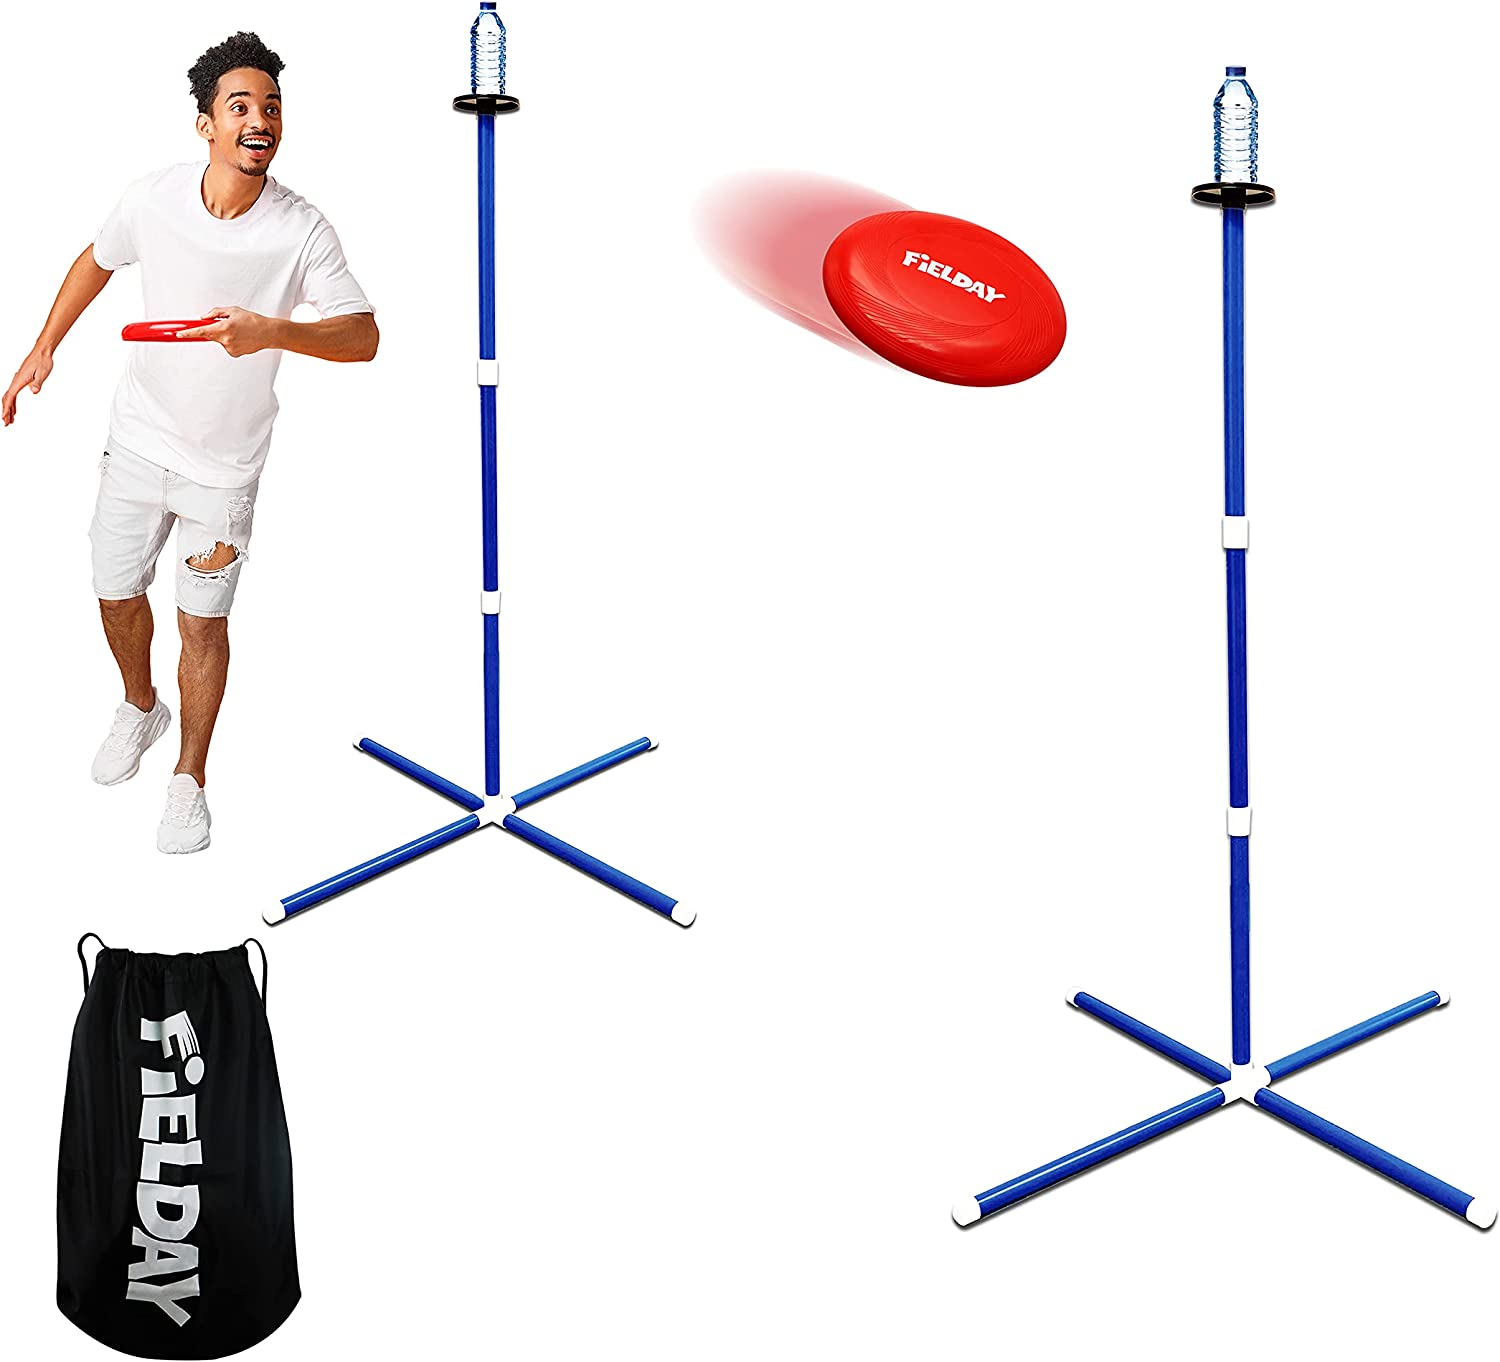 JOYIN Frisbee Game Set Outdoor Games Family Elegant Kids Adults for Fees free!! and